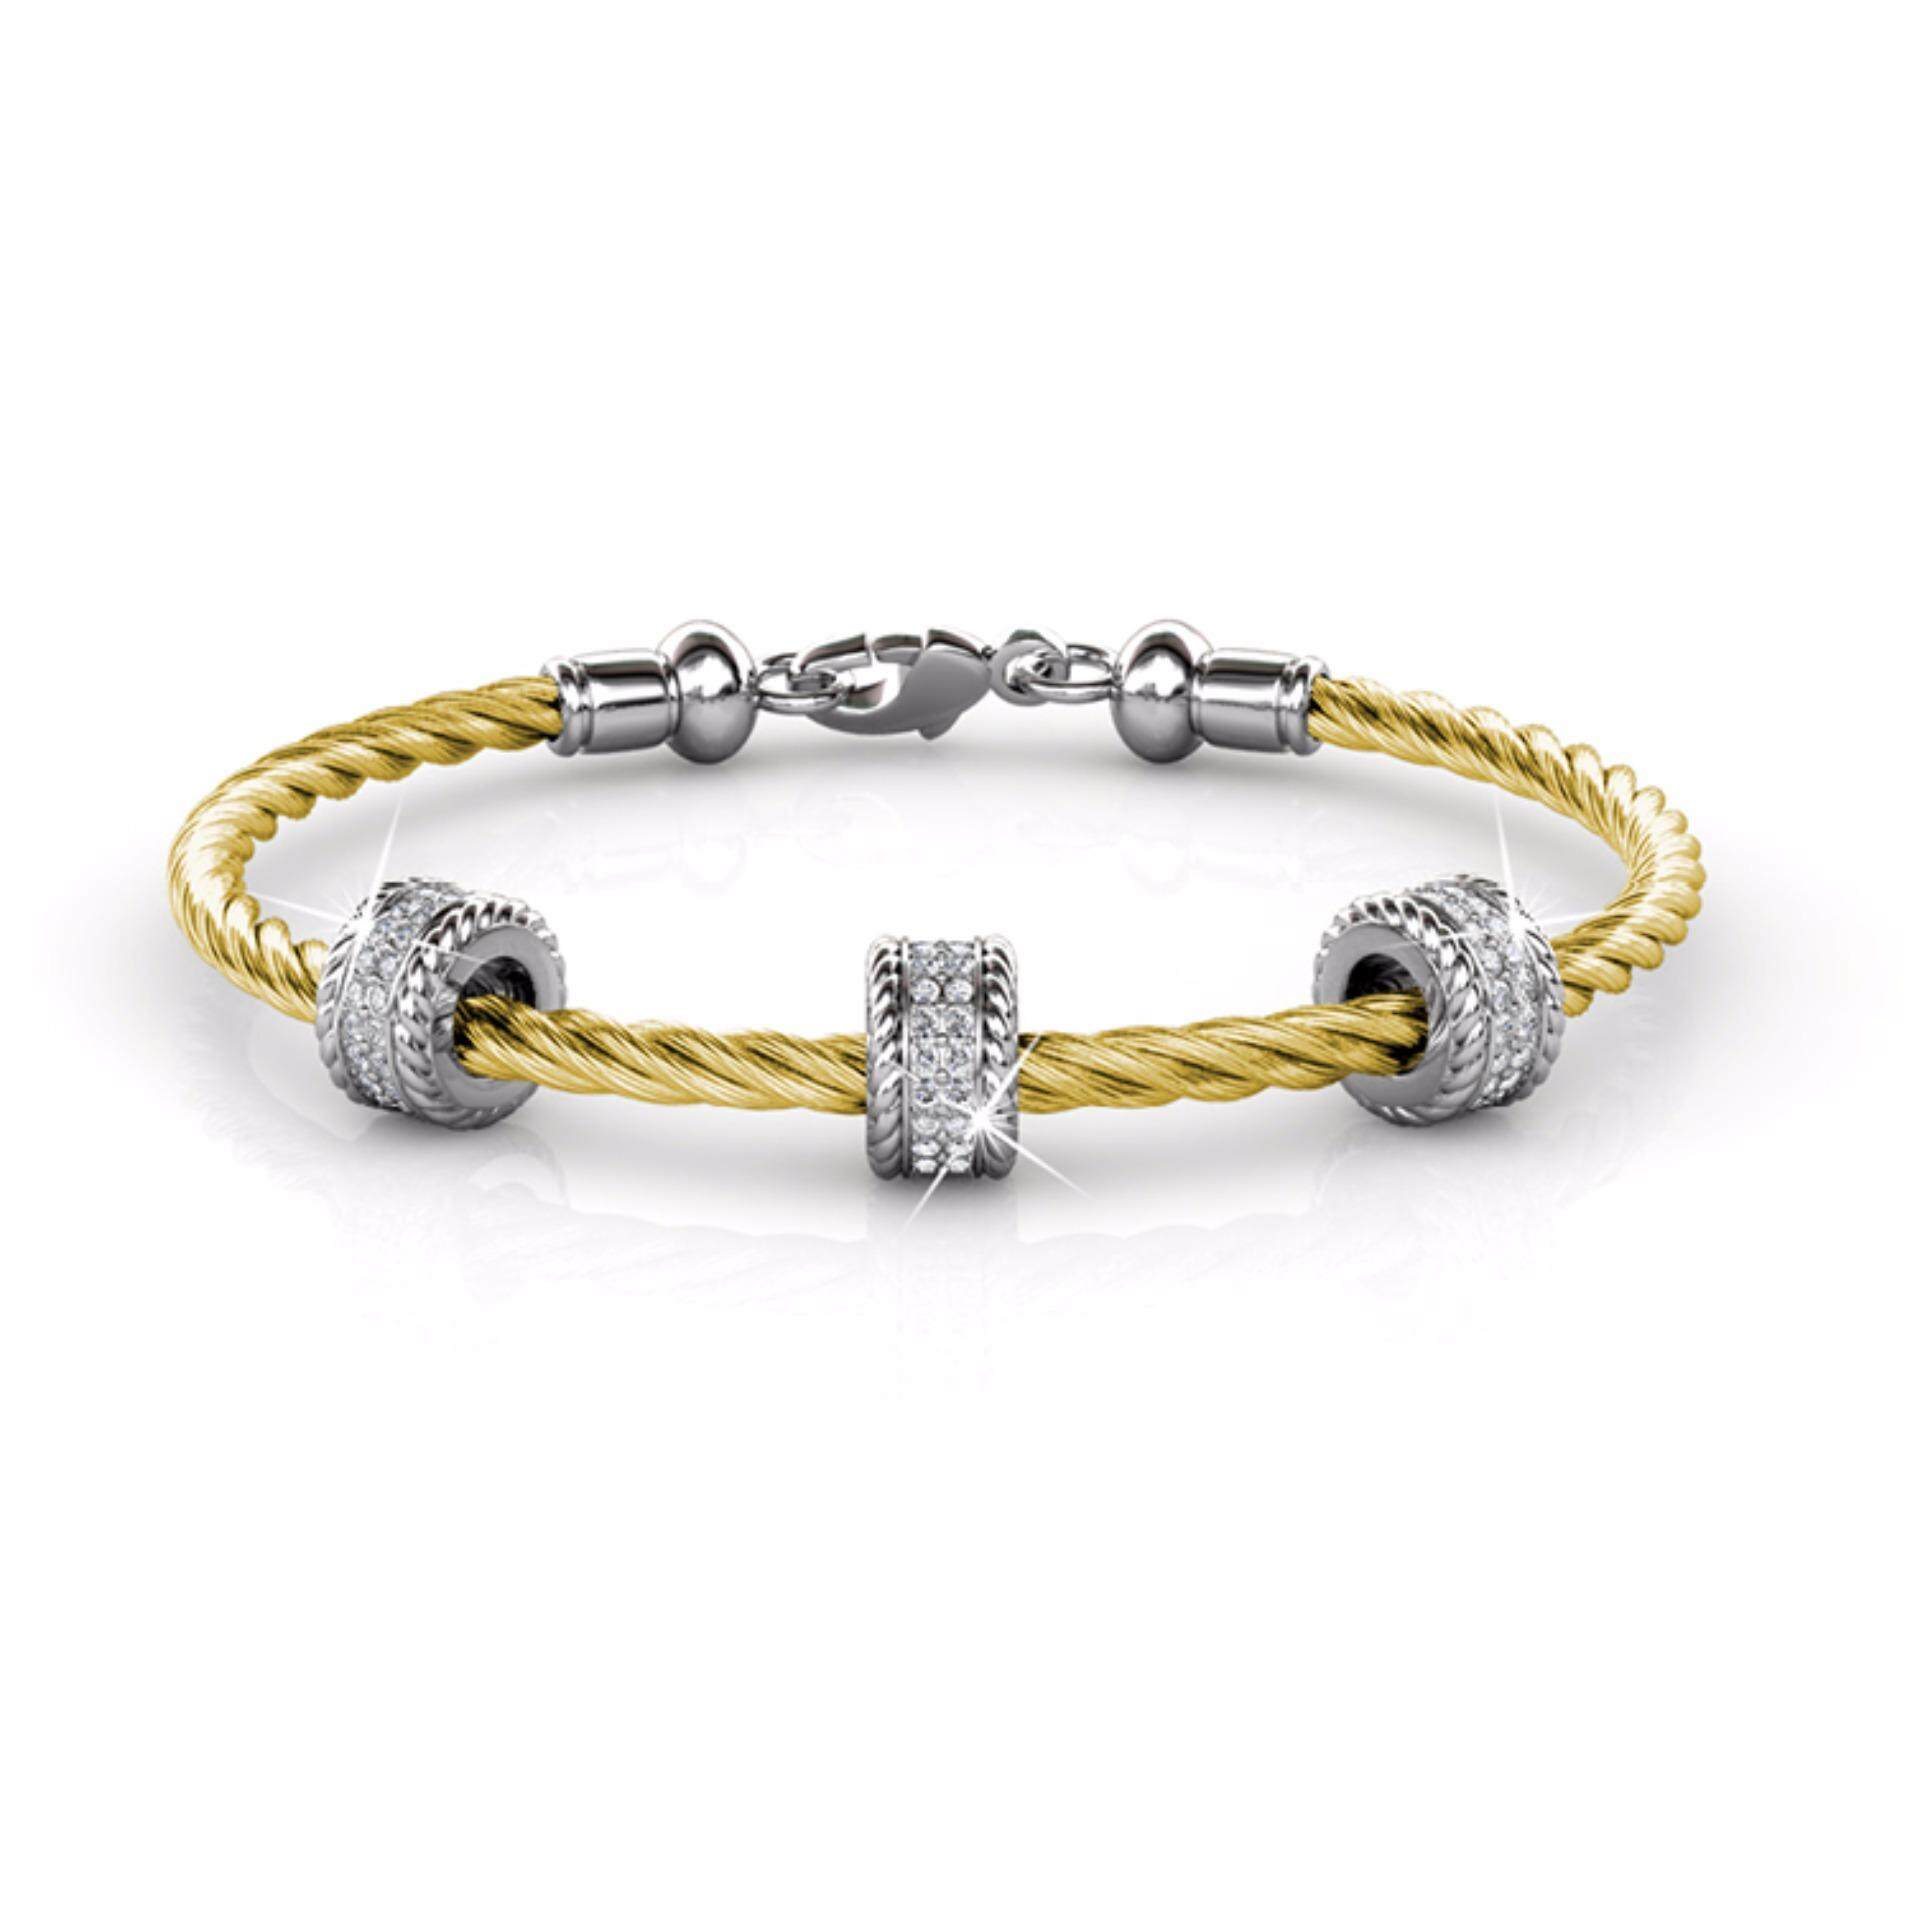 Bangle Roller (Yellow Gold) Embellished With Crystals From Swarovski - Her Jewellery